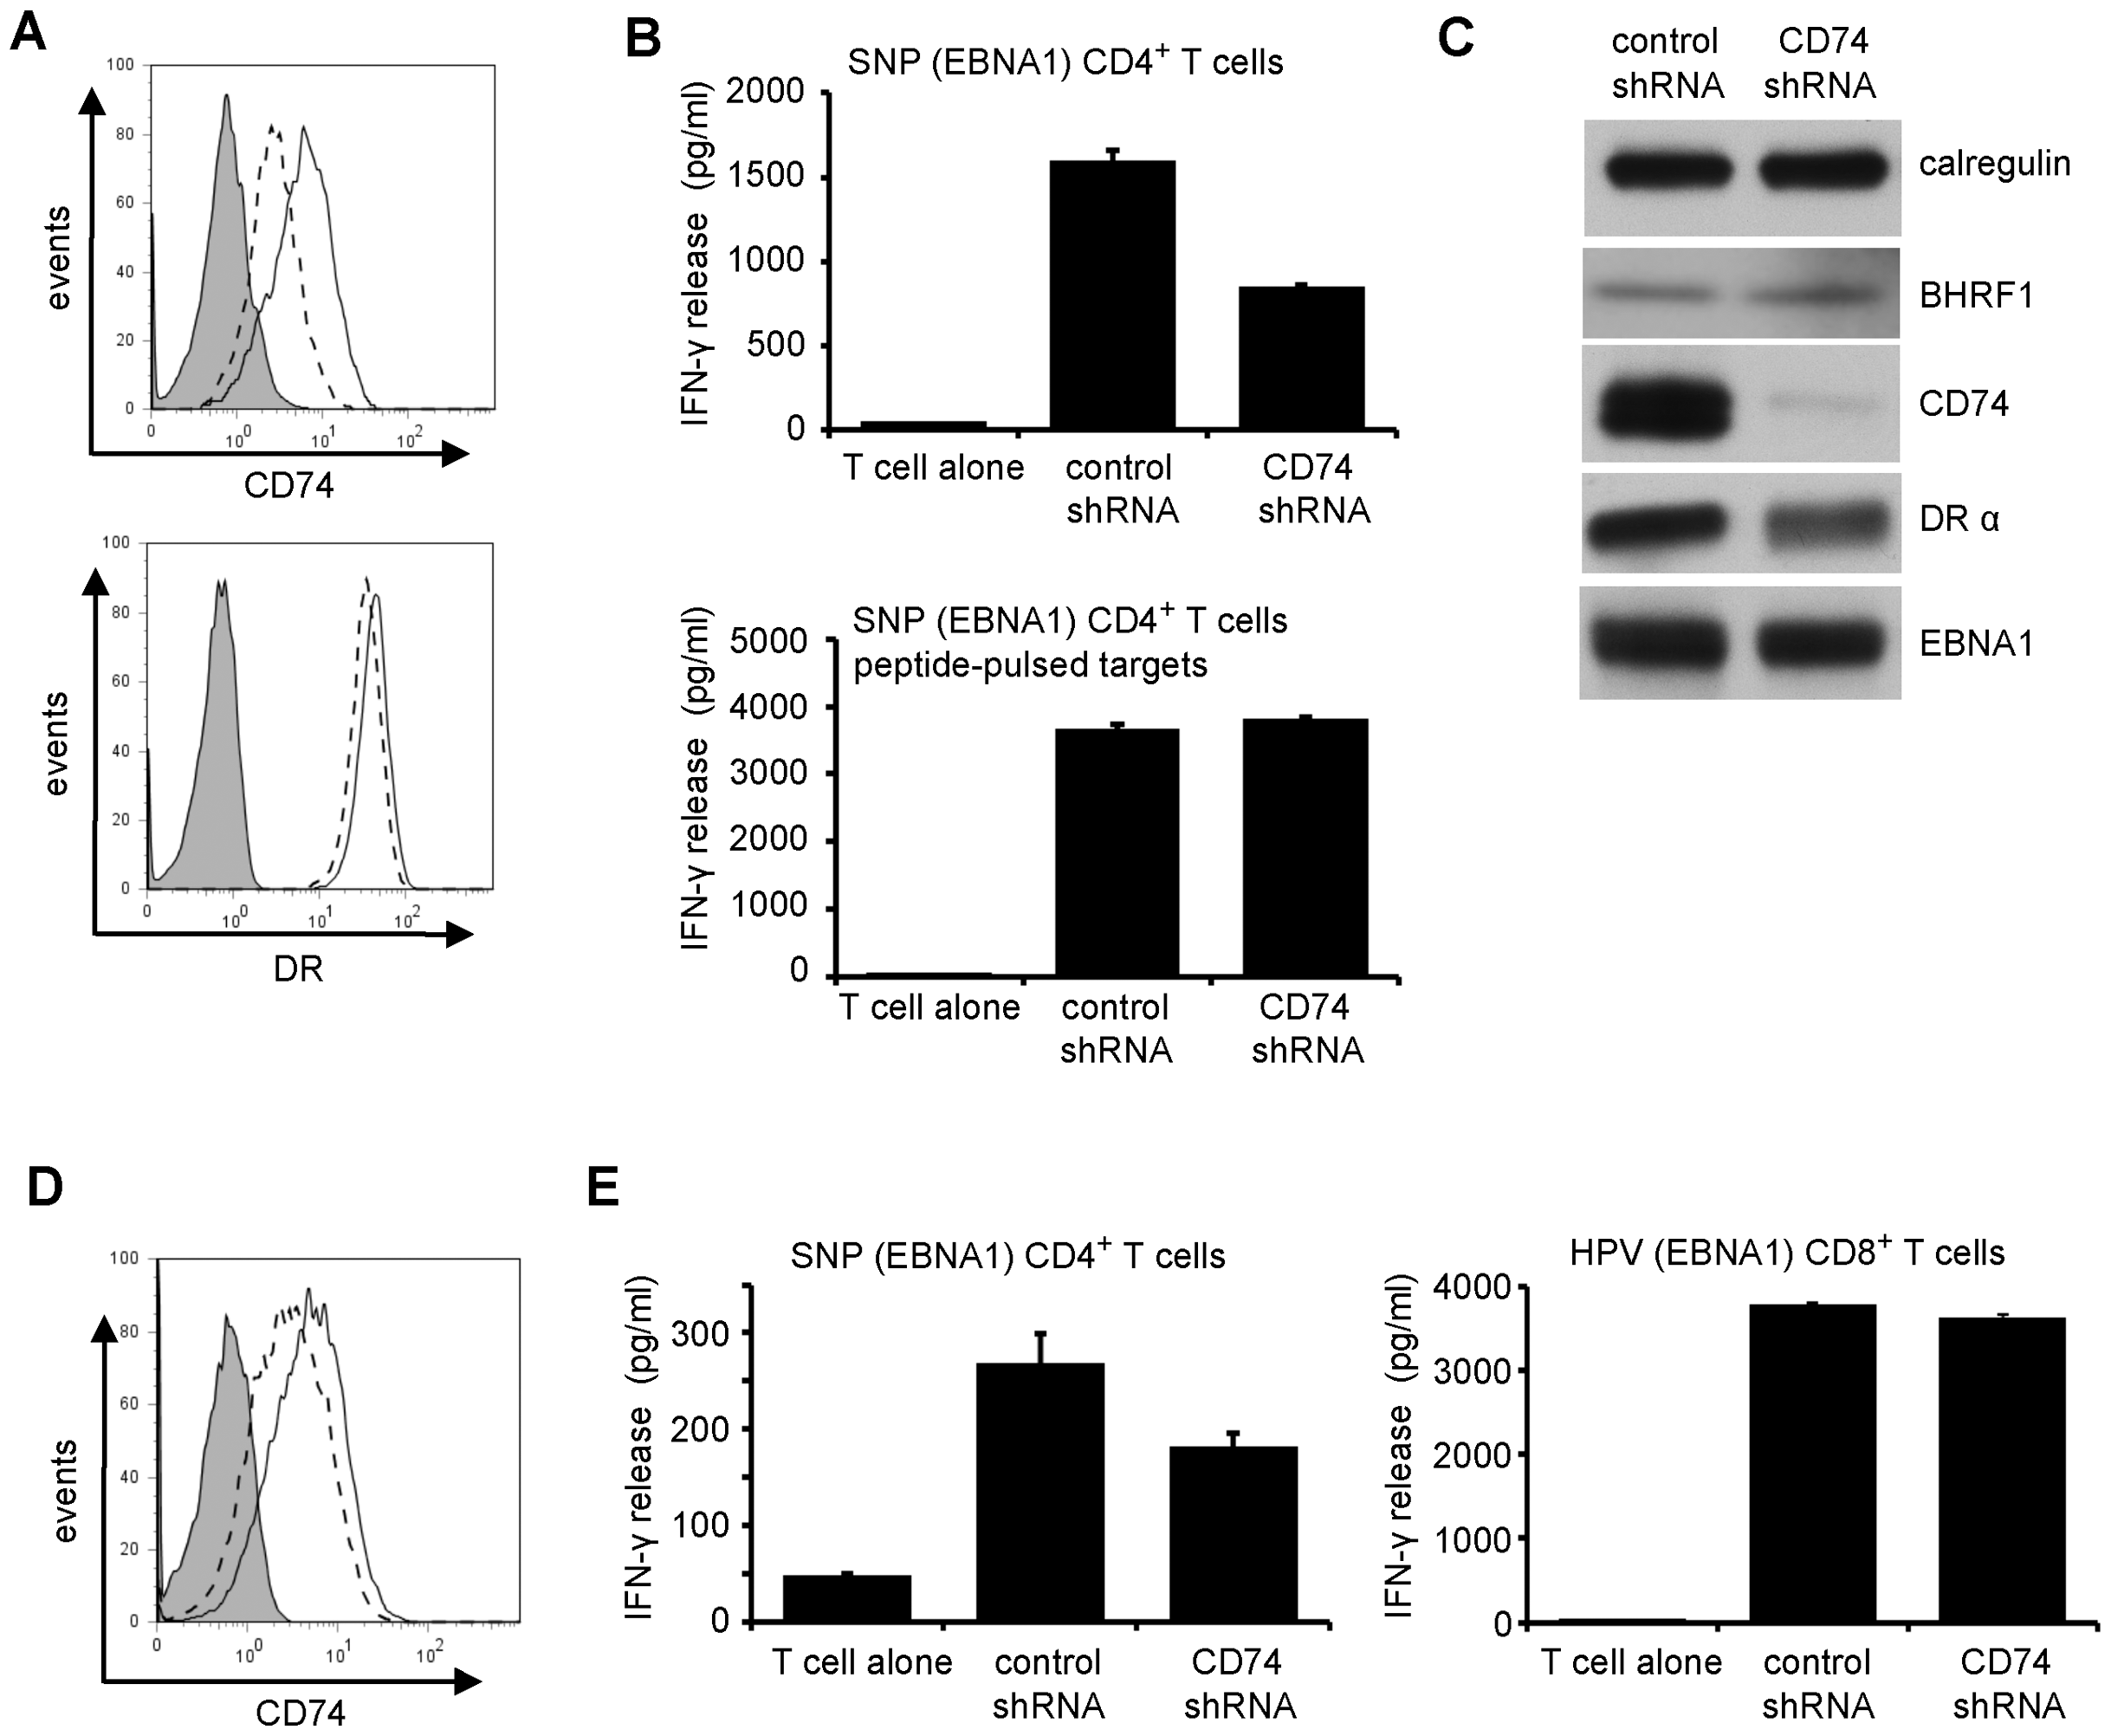 Downregulation of CD74 is sufficient to impair CD4<sup>+</sup> T cell recognition.